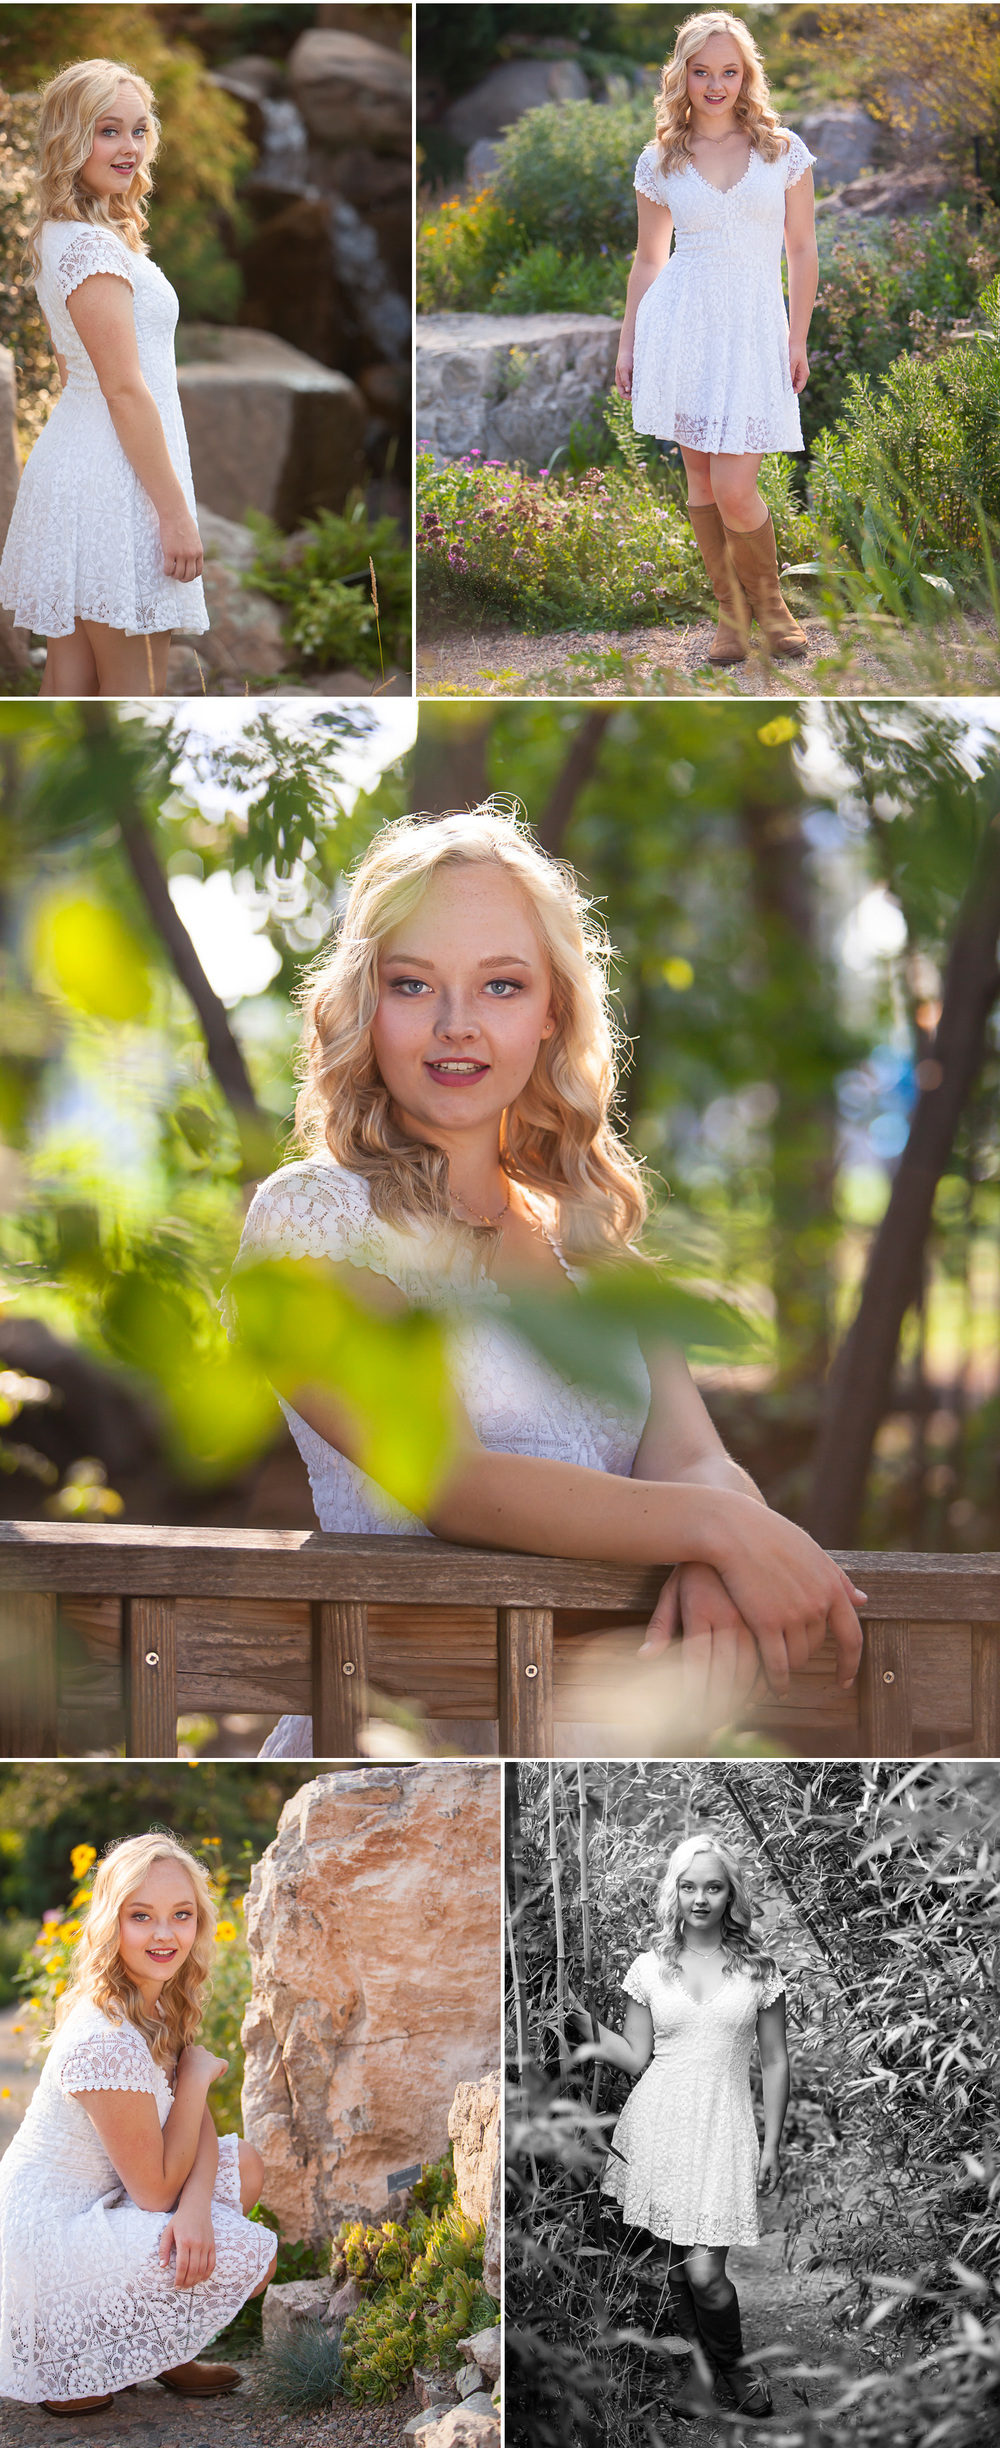 High school senior pictures outside in summer at the Denver Botanic Gardens with photographer Jennifer Koskinen, Merritt Portrait Studio